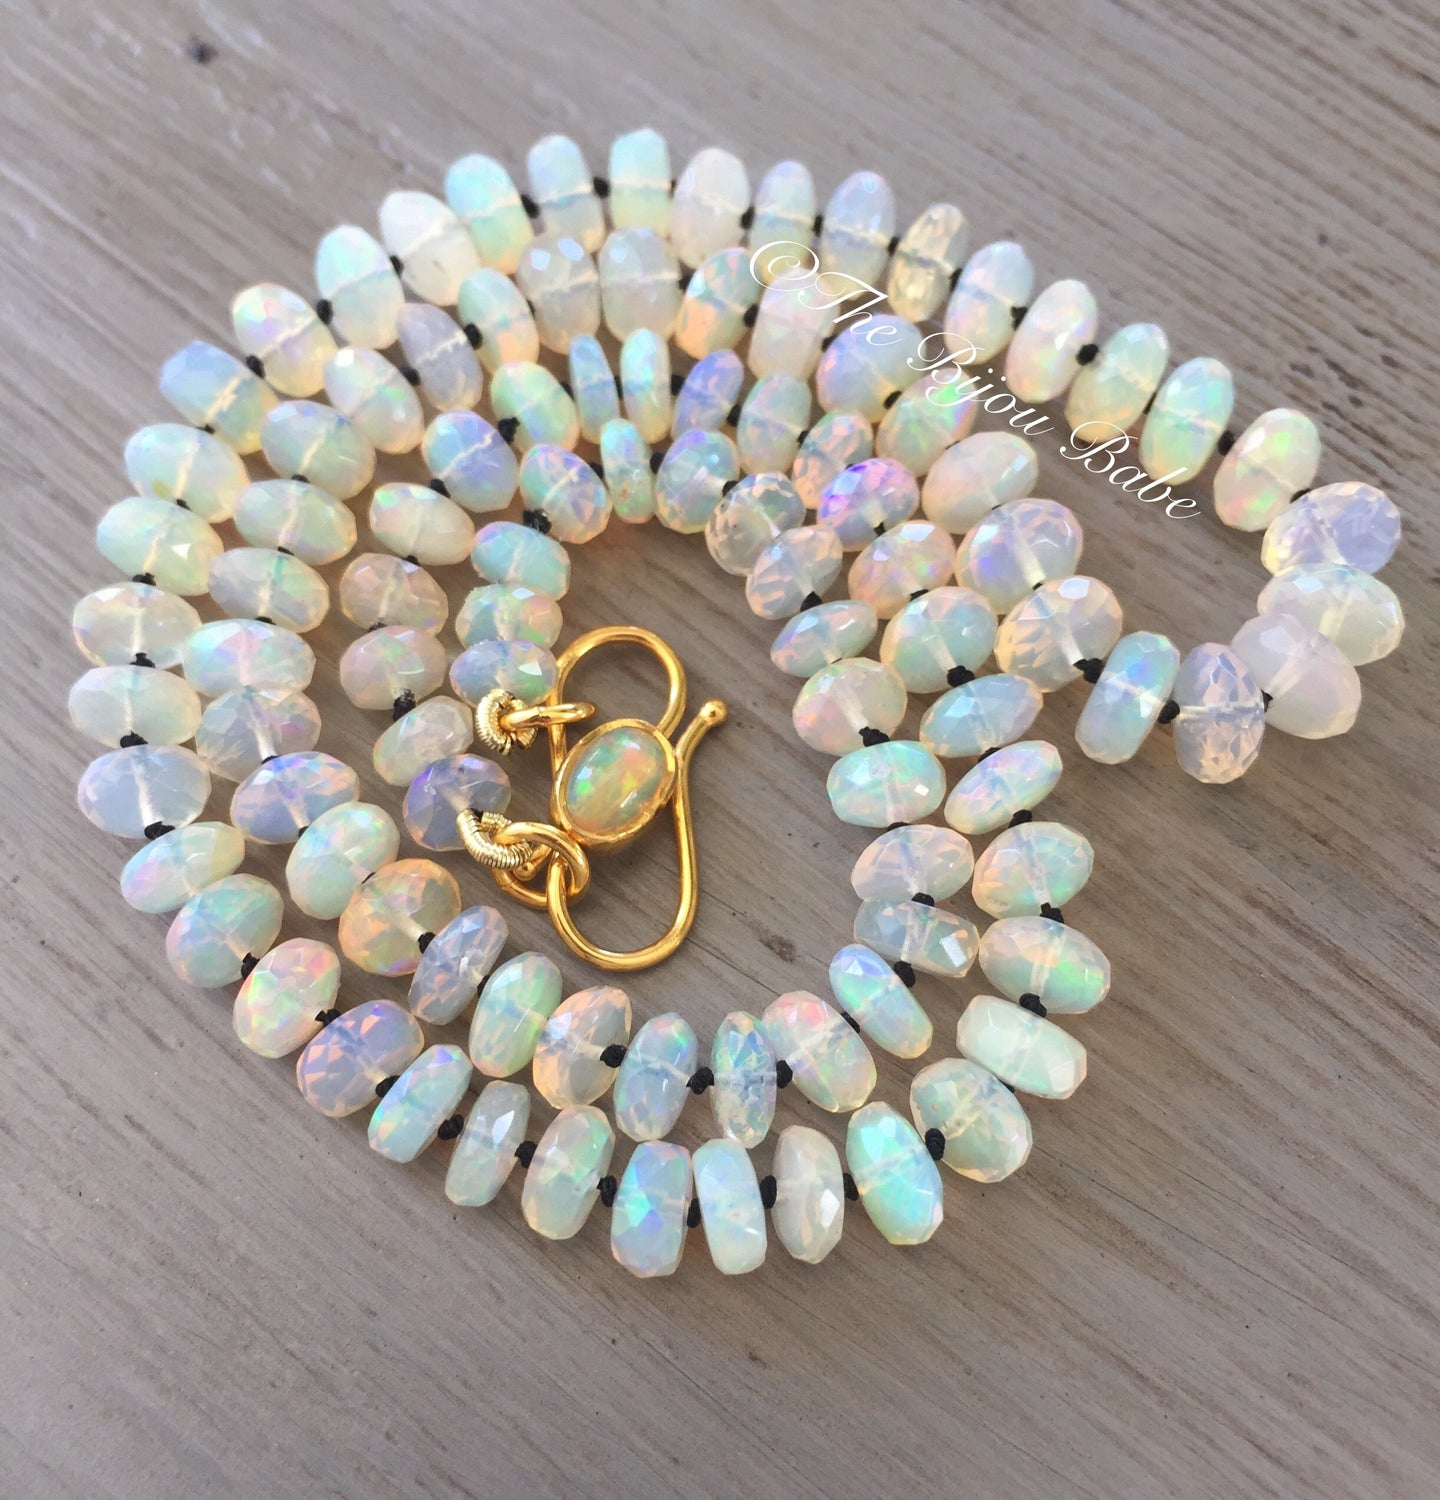 Reserved: Please do not purchase 18kt Gold Faceted Ethiopian Opal Necklace